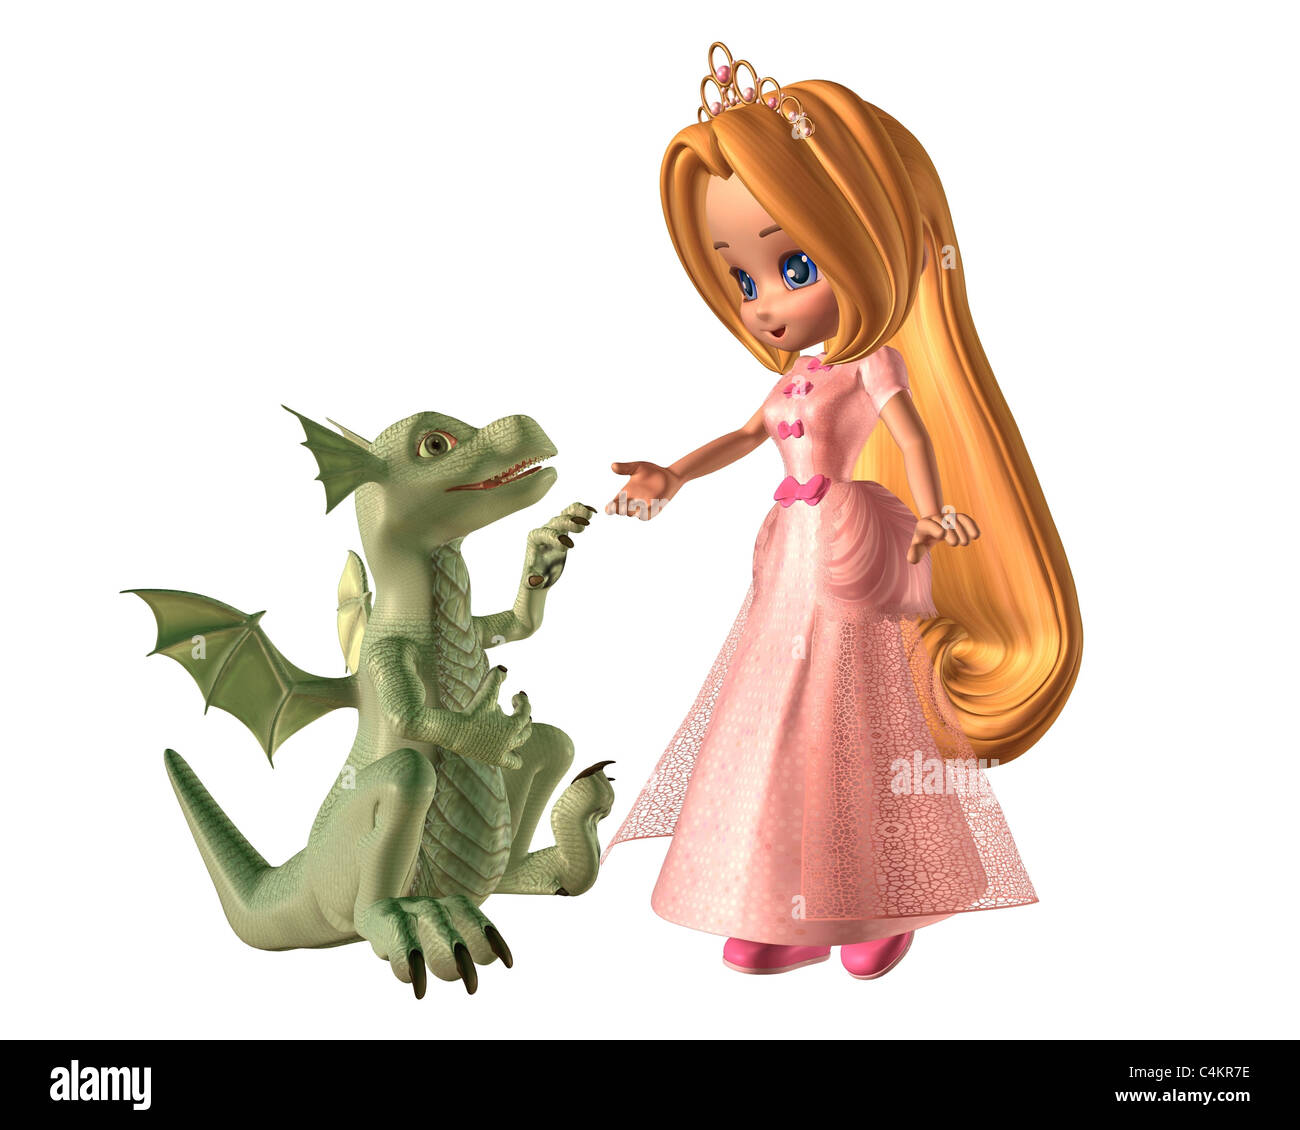 Toon Princess e Baby Dragon Immagini Stock